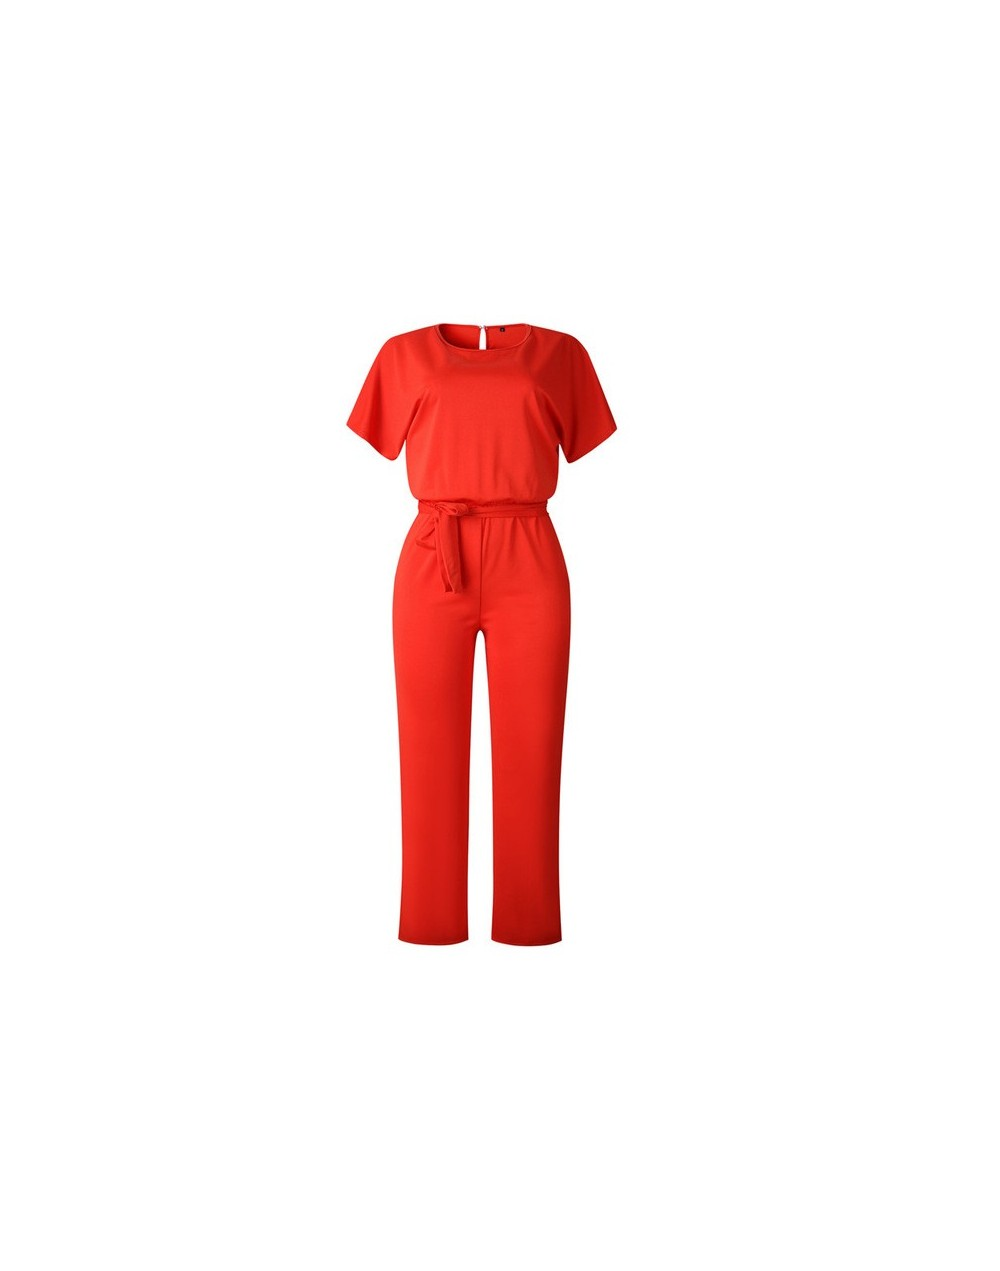 Short Sleeve 2019 New Women Jumpsuit Solid Back Button Bodysuits Womens Casual Spring Summer Overalls Female Jumpsuits - Red...